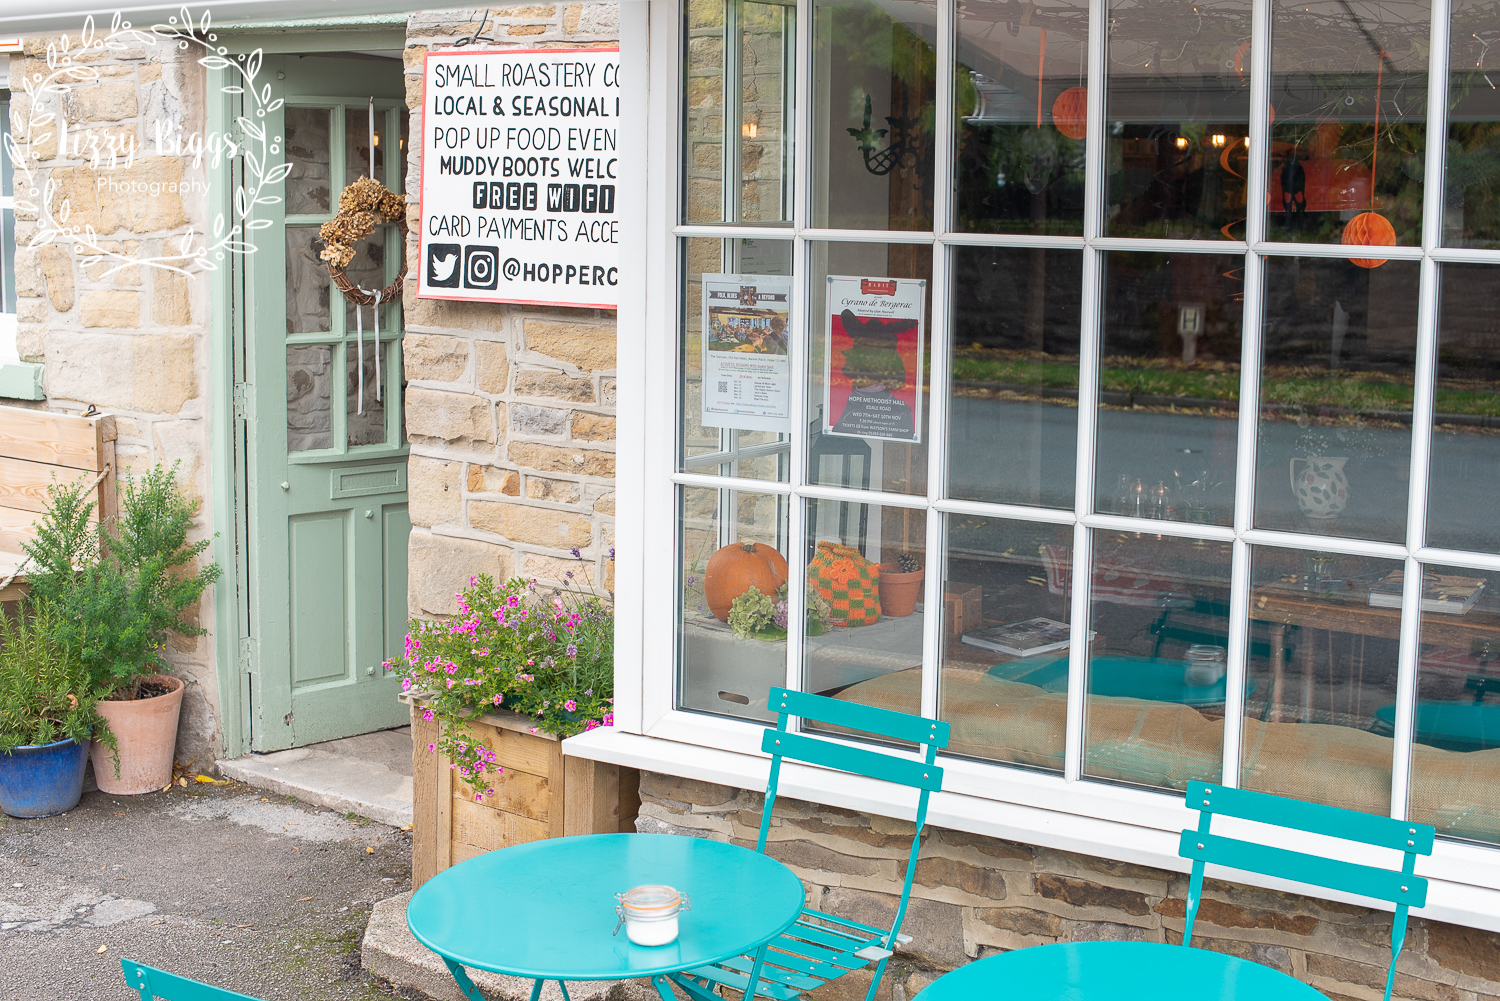 Lizzy_Biggs_Photography_Grass_Hopper_Cafe_Shop_Front